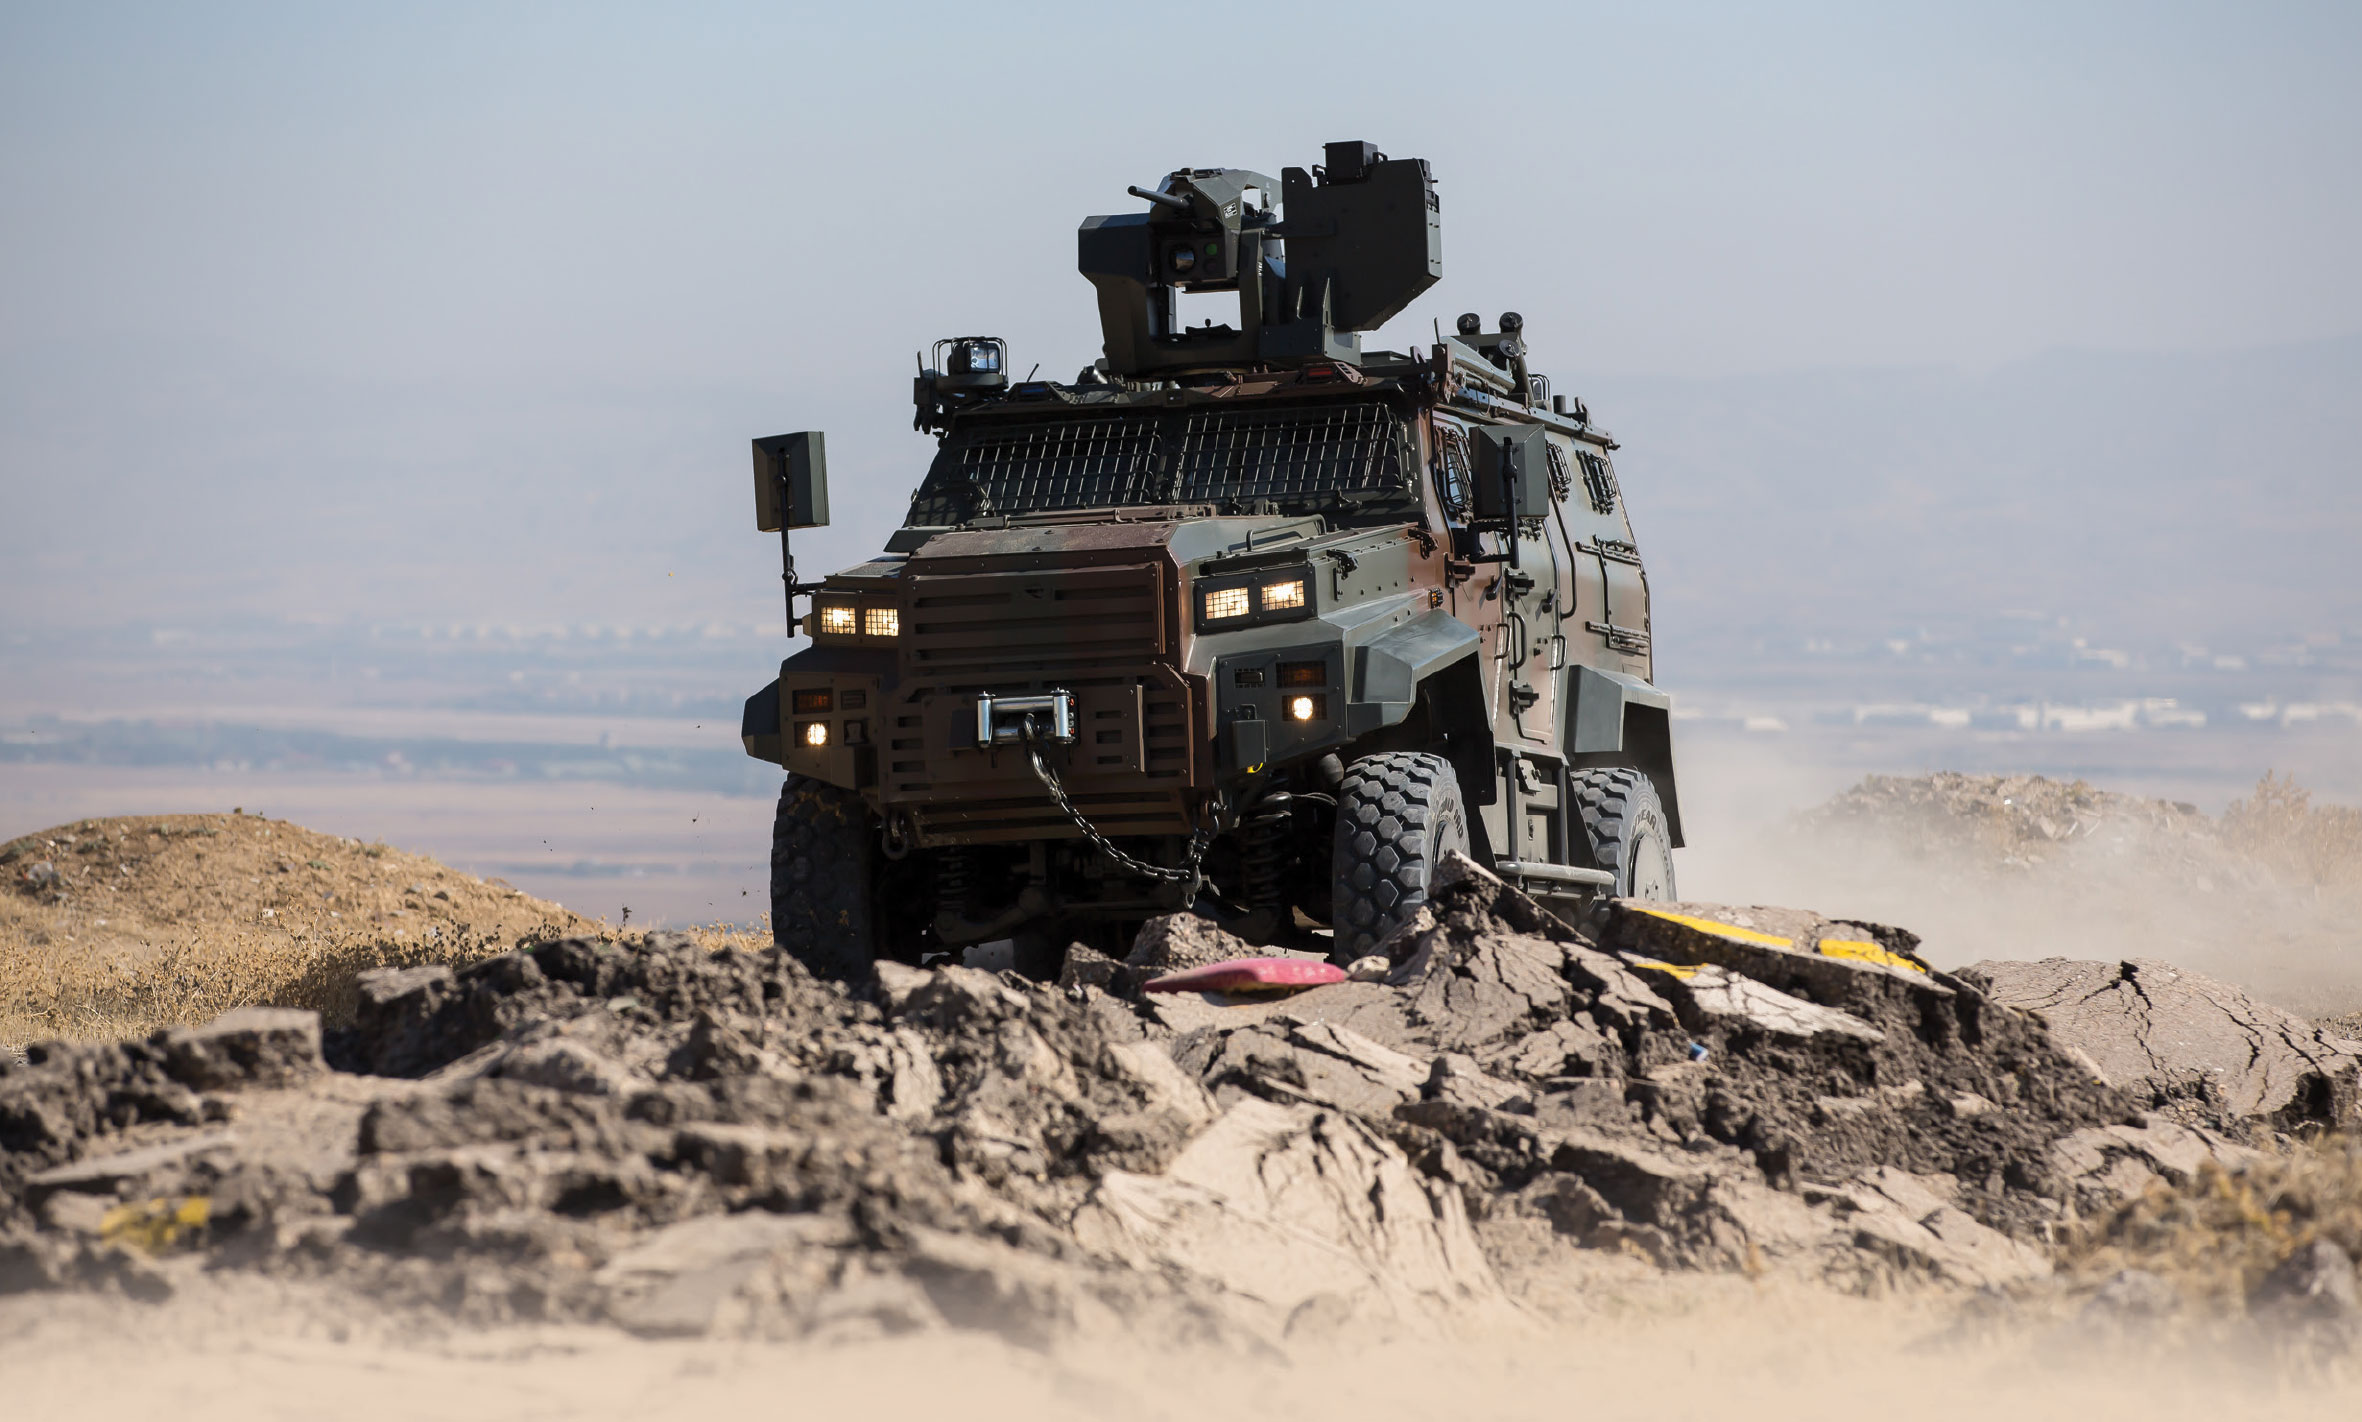 Nurol Makina to Demonstrate Newest and Combat Proven Vehicles at IDEF '19